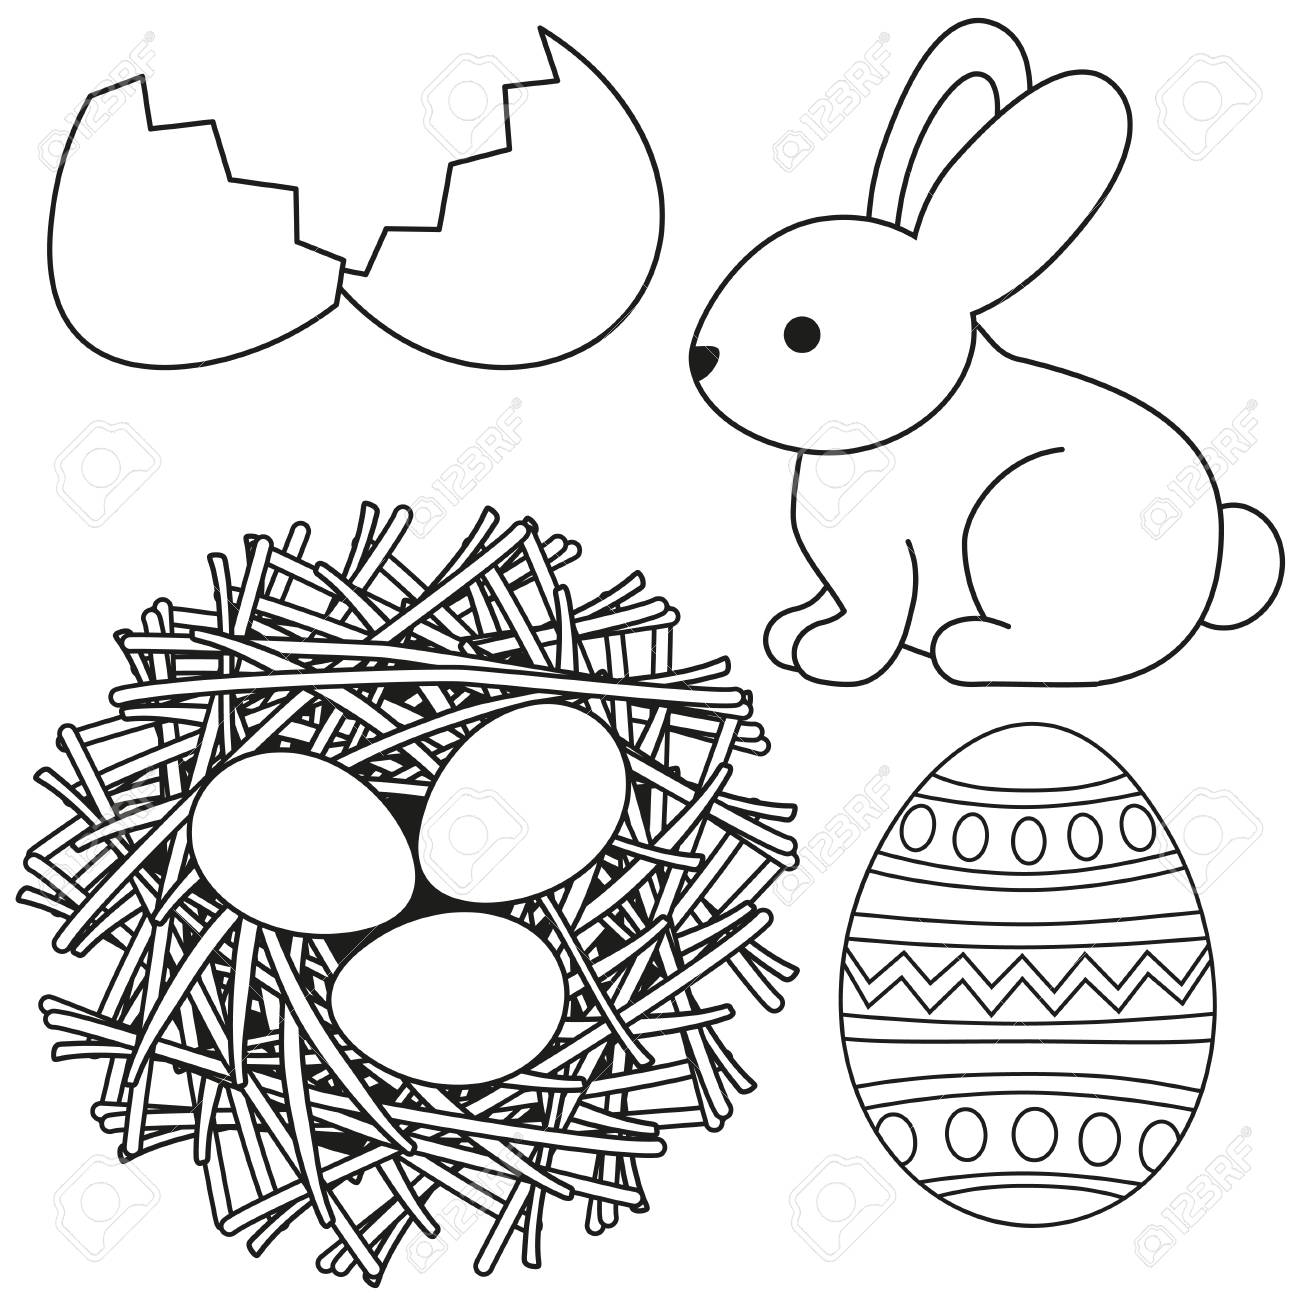 Line Art Black And White Easter Icon Set Egg Shell Bunny Chicken Nest Coloring Book